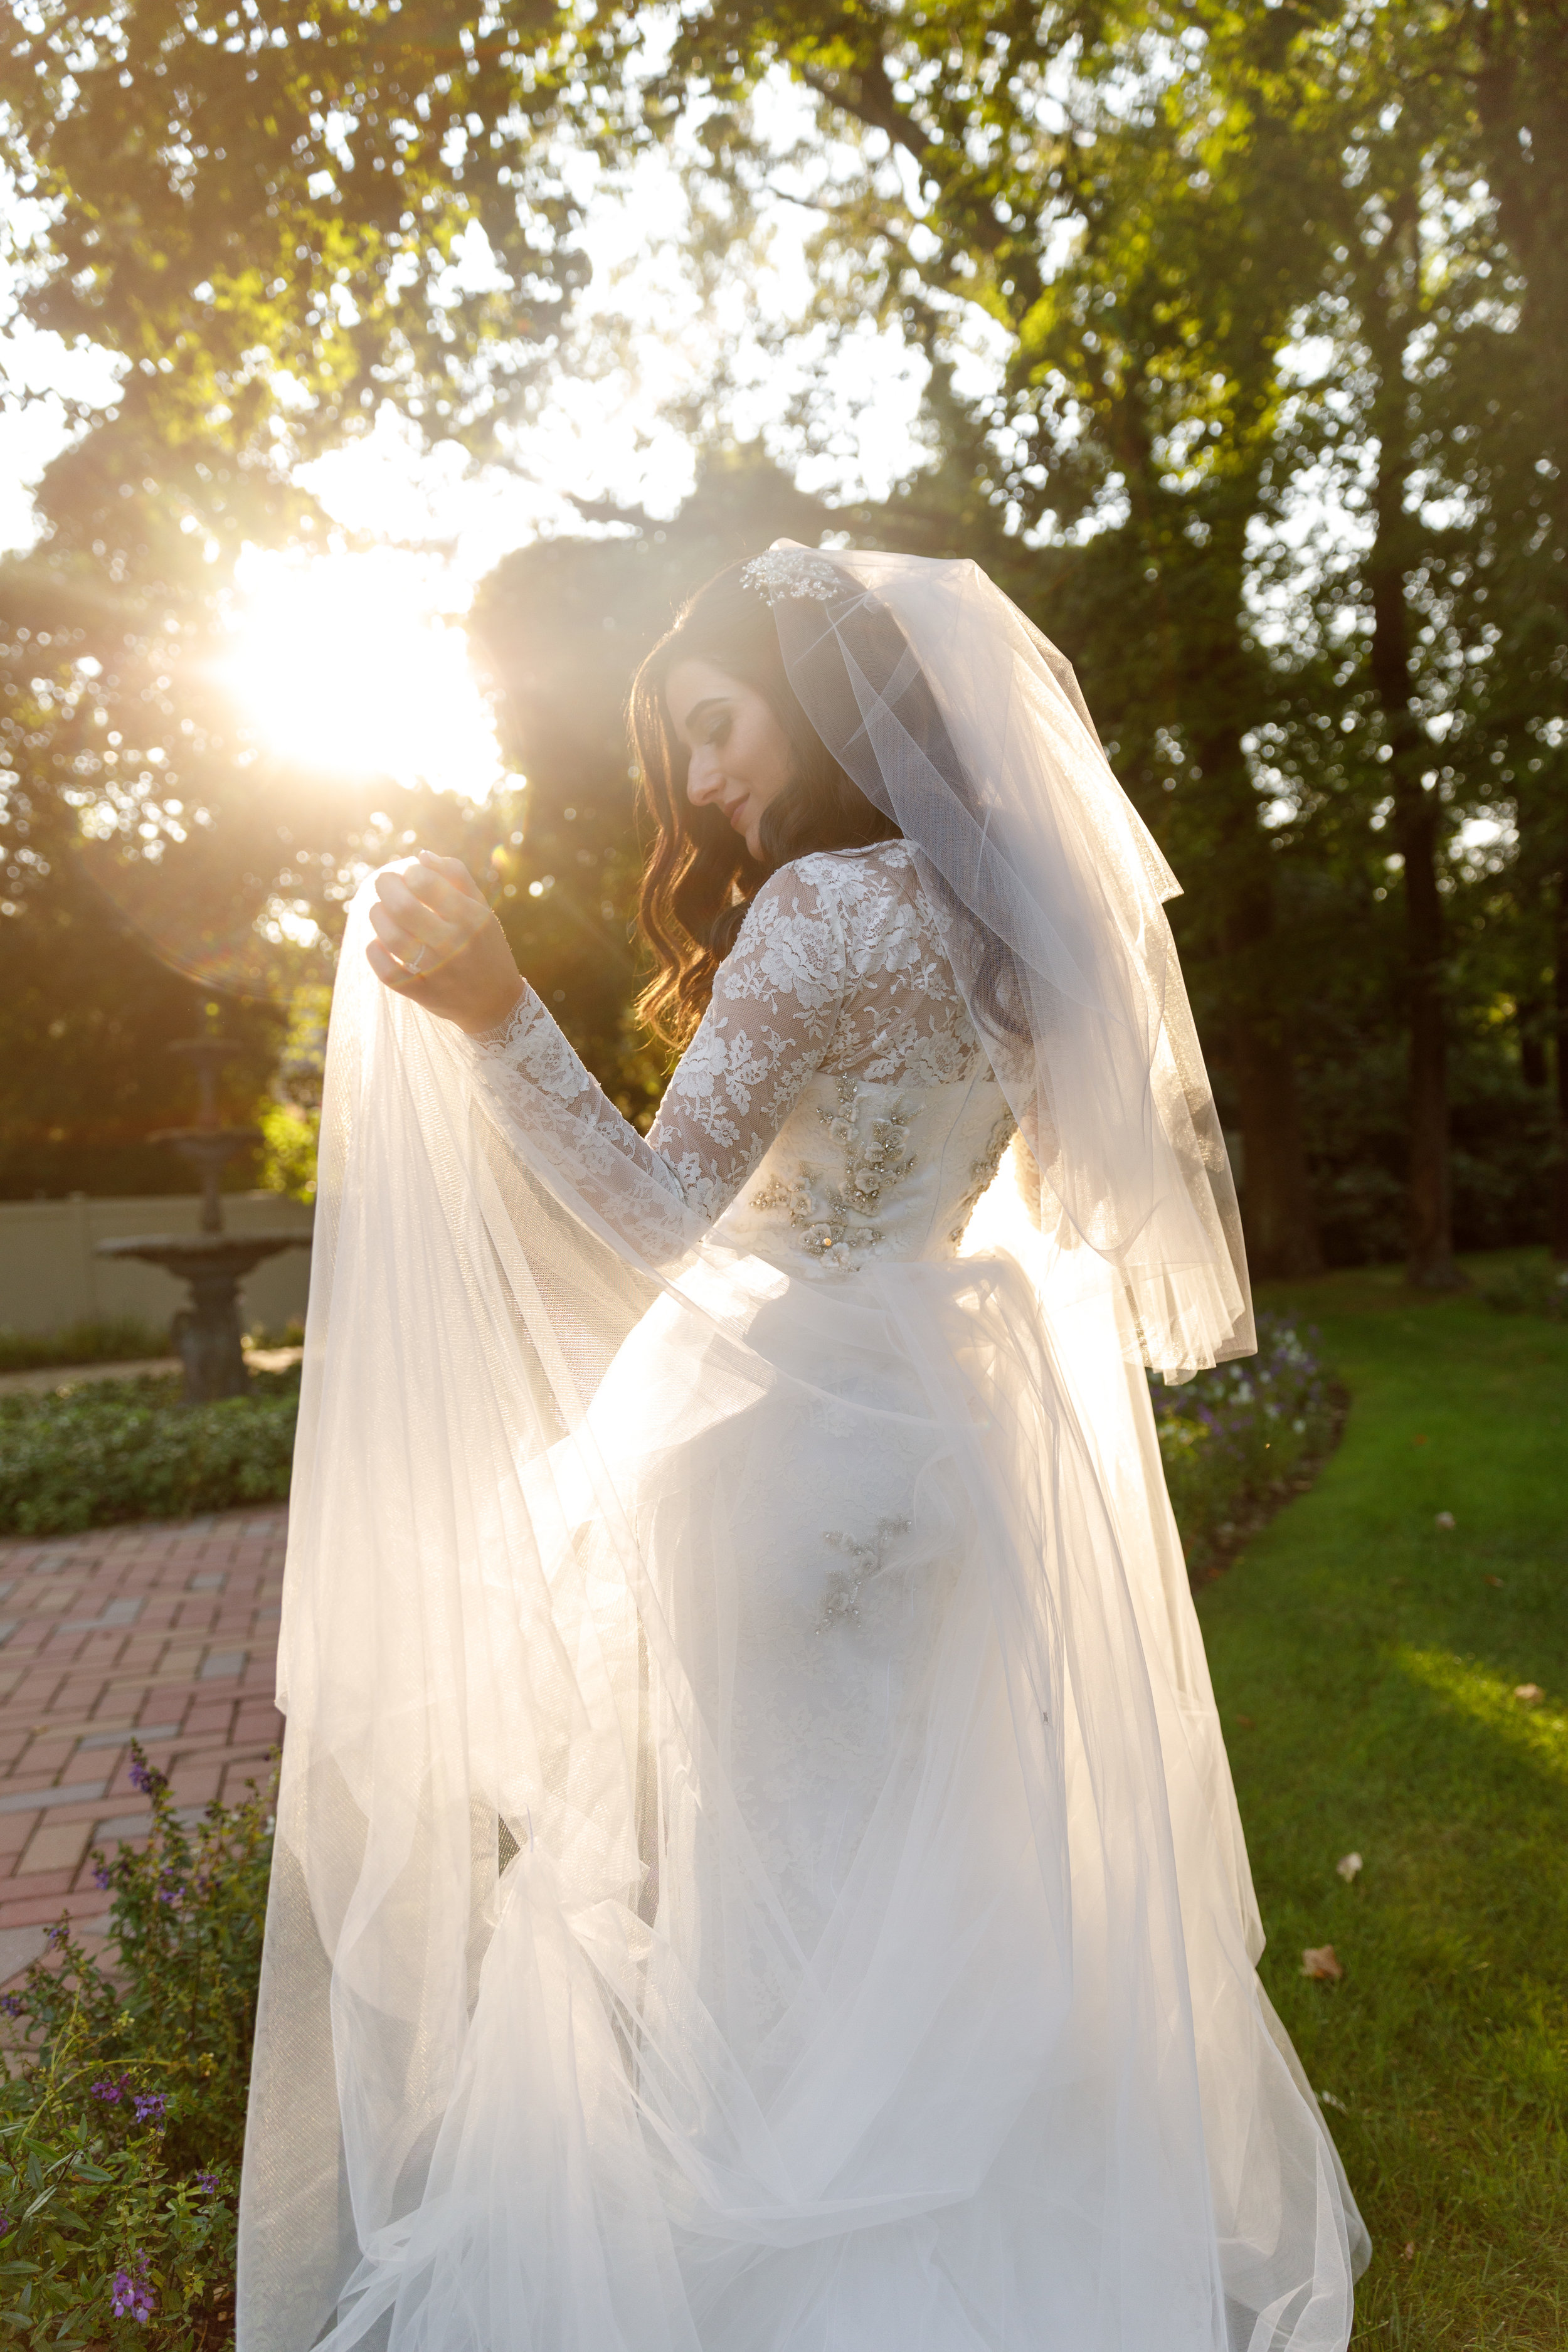 First Look At My Custom Raquel Couture Wedding Dress Esther Santer Fashion Blog NYC Street Style Blogger Outfit OOTD Trendy Fall Ceremony Portrait Photography Bride Groom Beautiful Outdoor Reception Dancing Tulle Train  Beading White Lace Inspiration.JPG